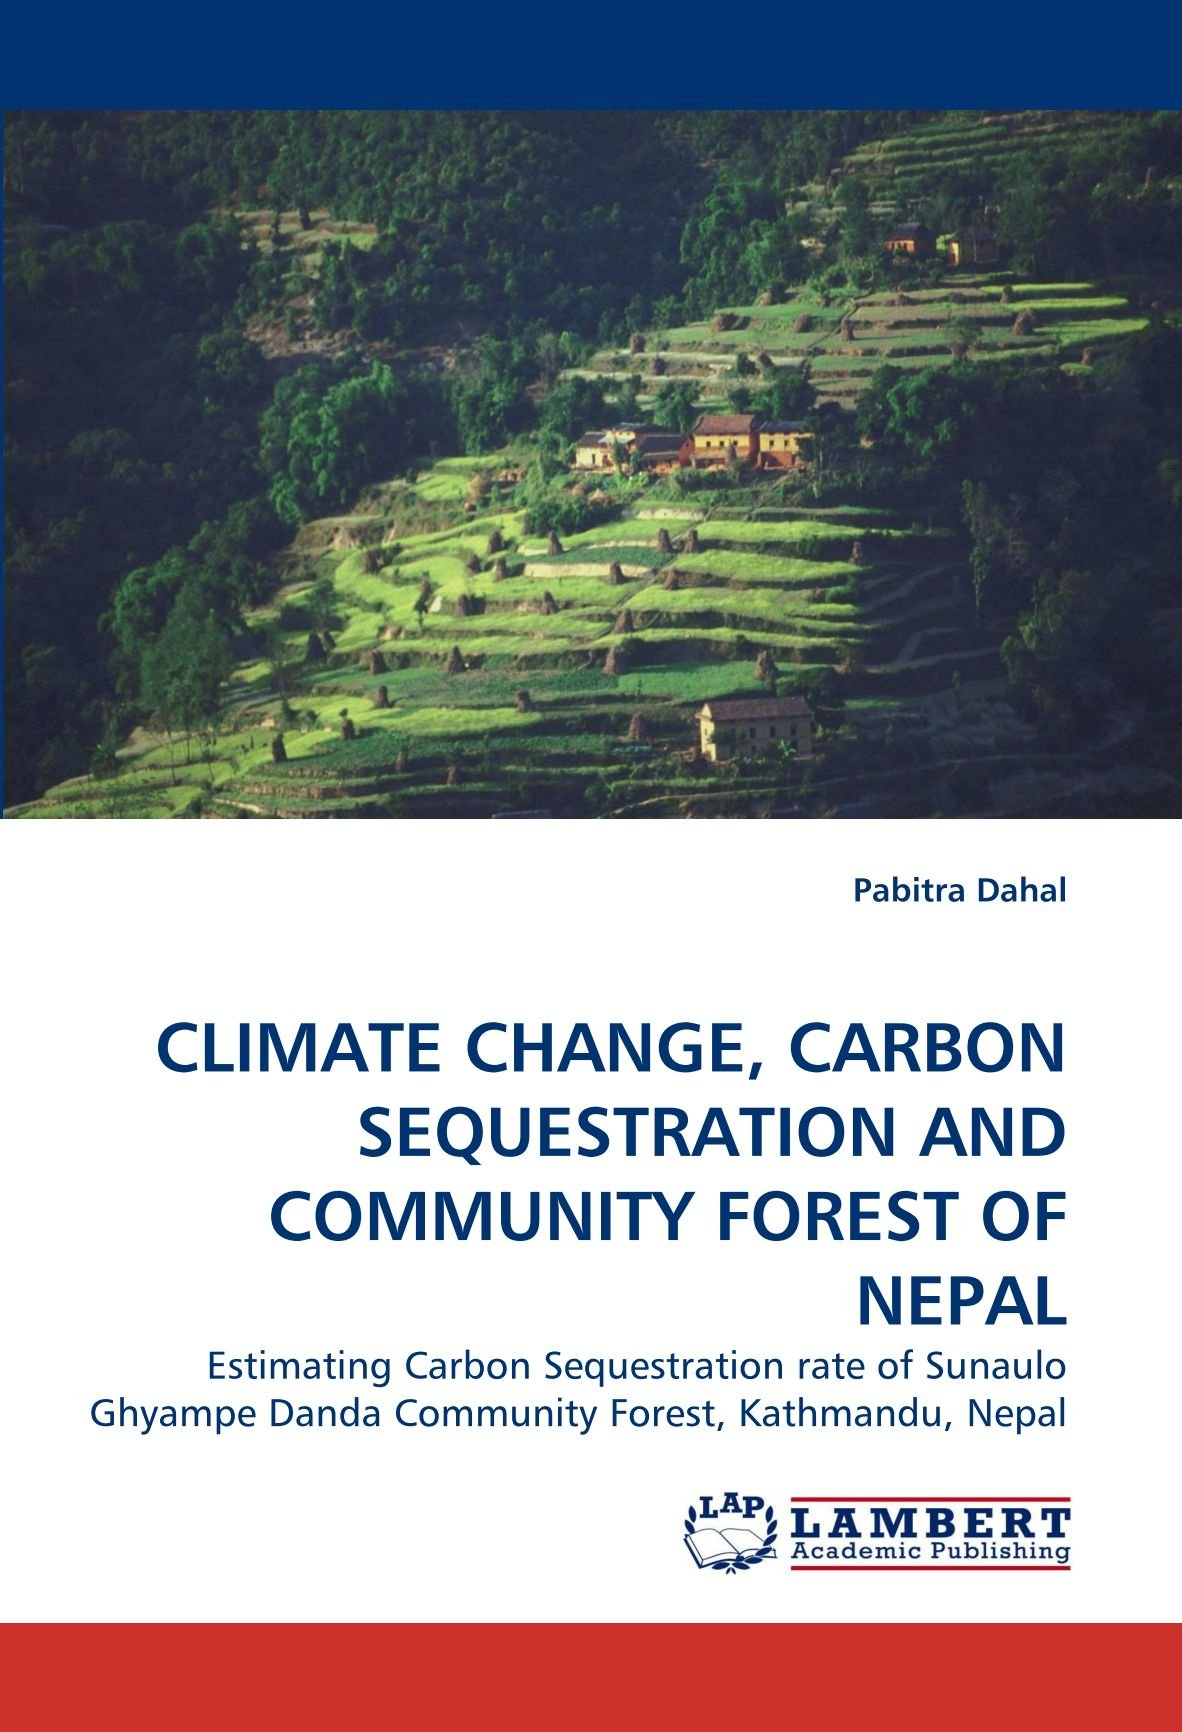 Download CLIMATE CHANGE, CARBON SEQUESTRATION AND COMMUNITY FOREST OF NEPAL: Estimating Carbon Sequestration rate of Sunaulo Ghyampe Danda Community Forest, Kathmandu, Nepal pdf epub